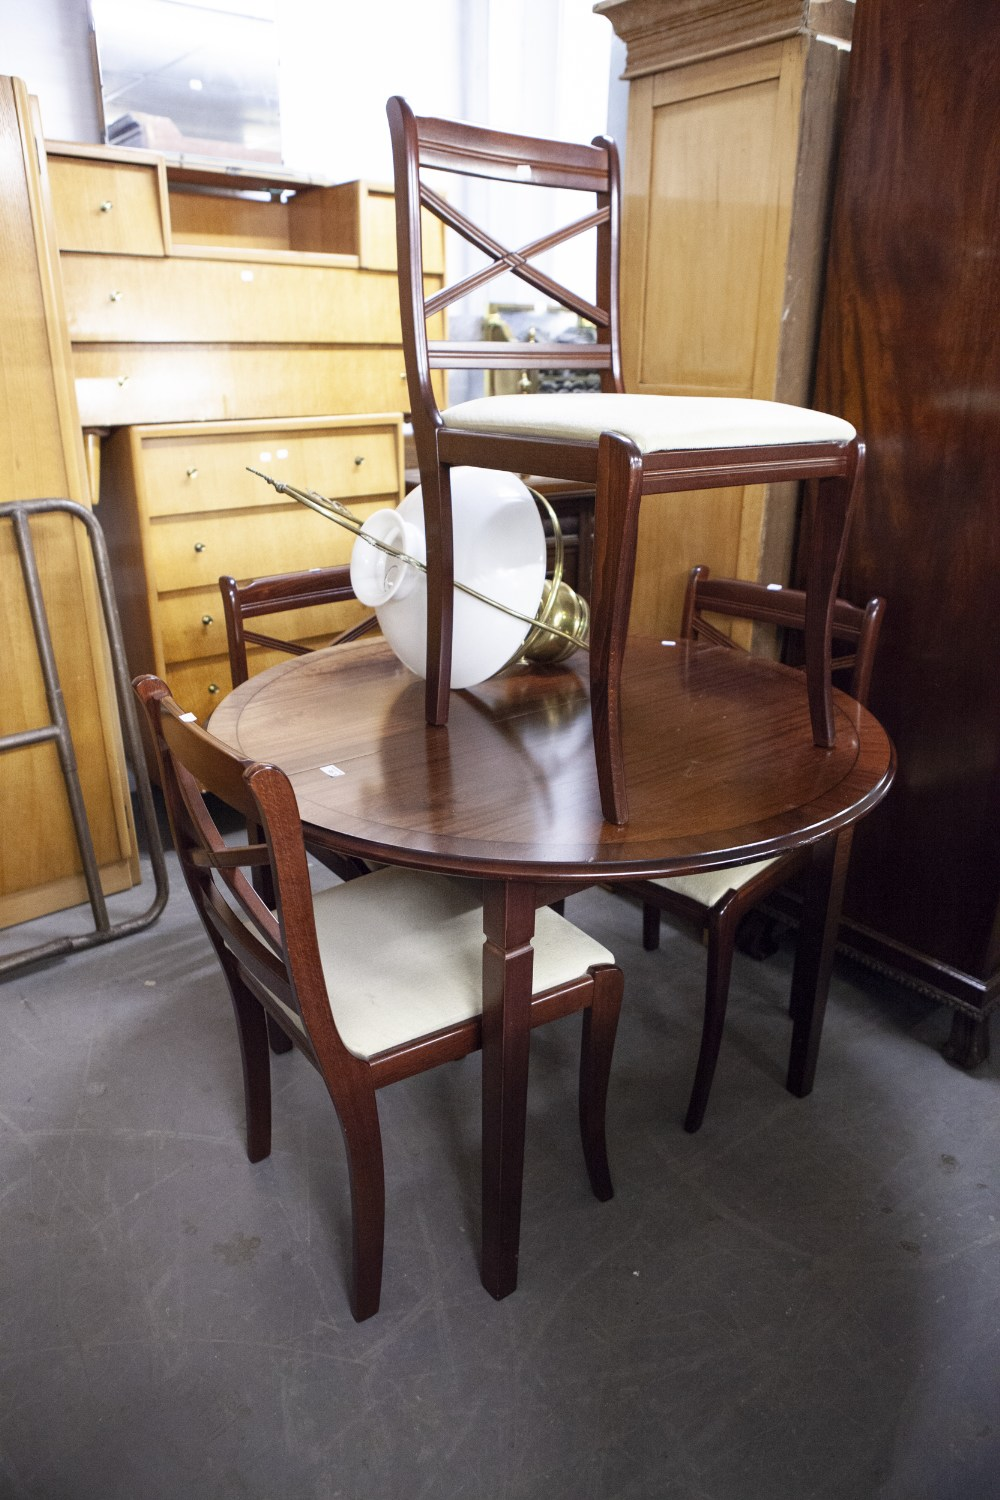 Lot 45 - A SET OF FOUR REGENCY STYLE MAHOGANY SINGLE CHAIRS, ON SABRE FRONT SUPPORTS AND THE MAHOGANY